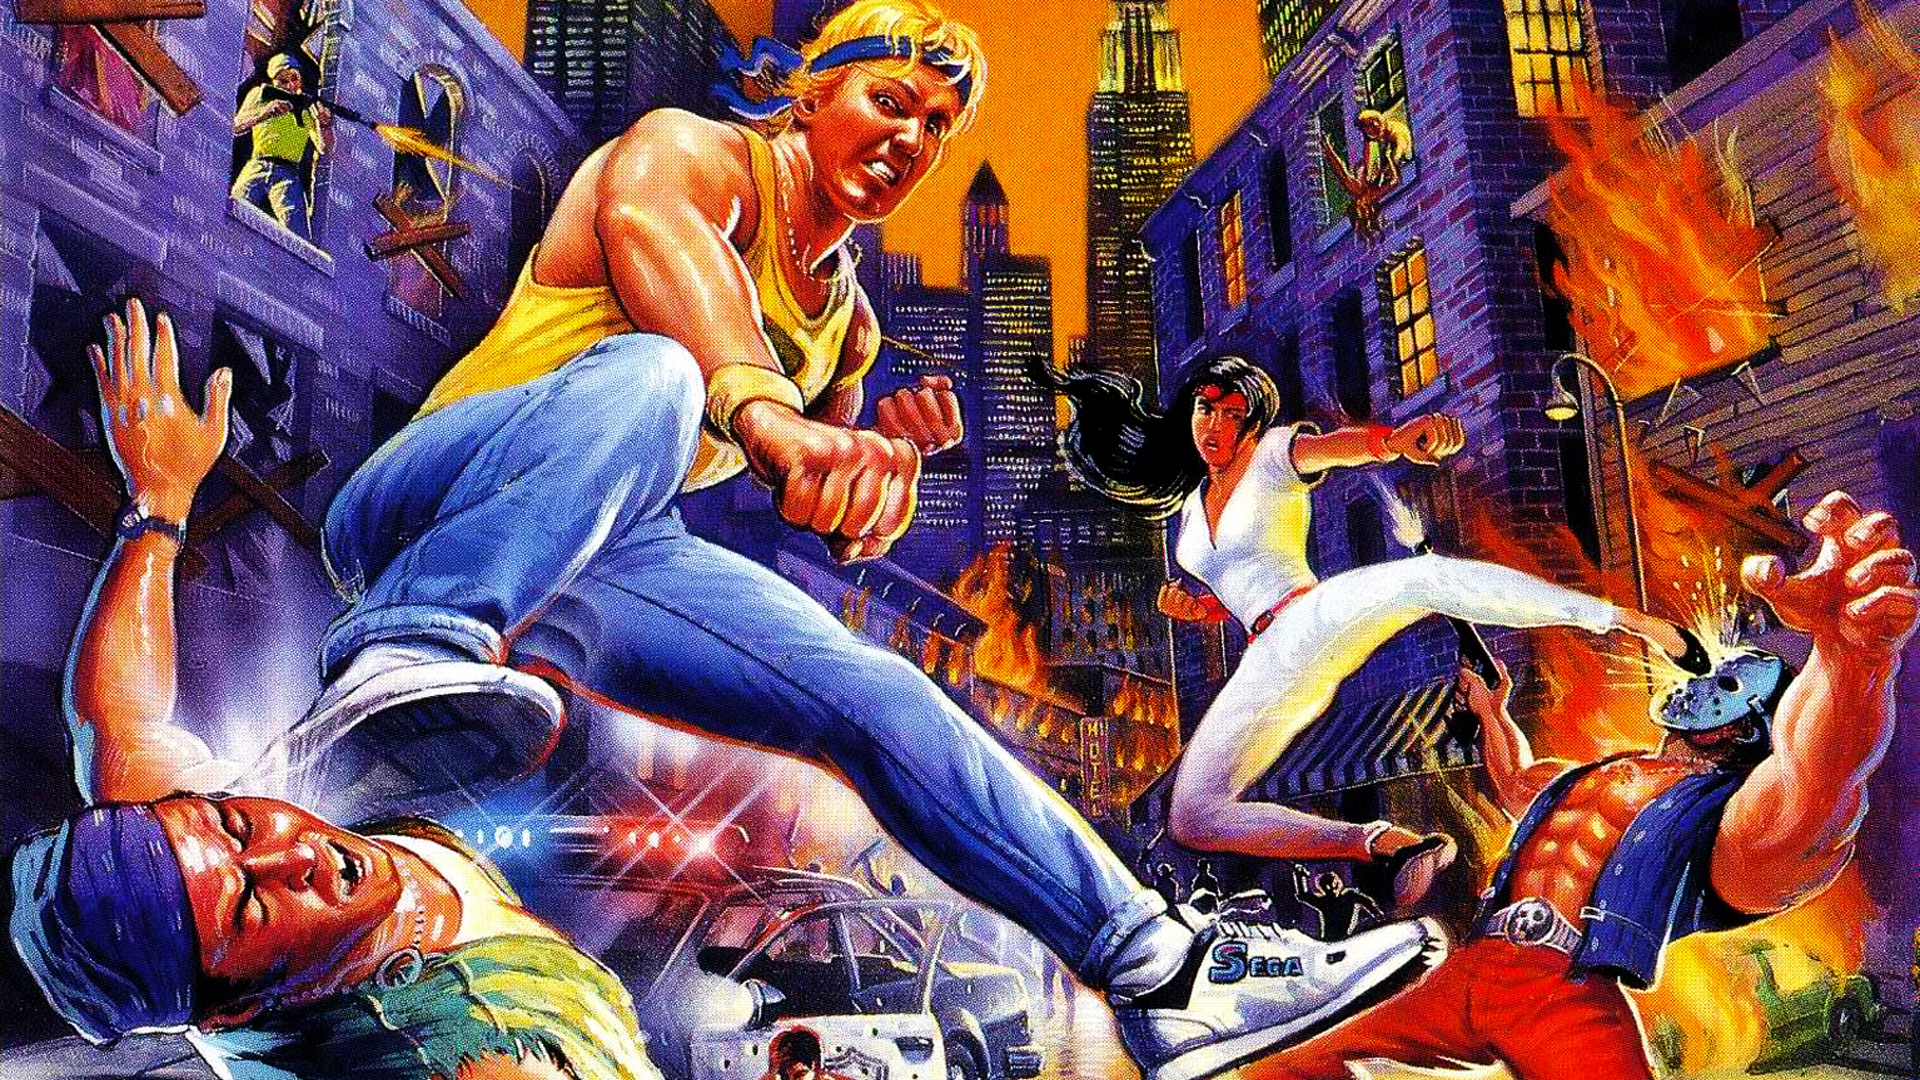 Streets of Rage Wallpaper in 1920x1080